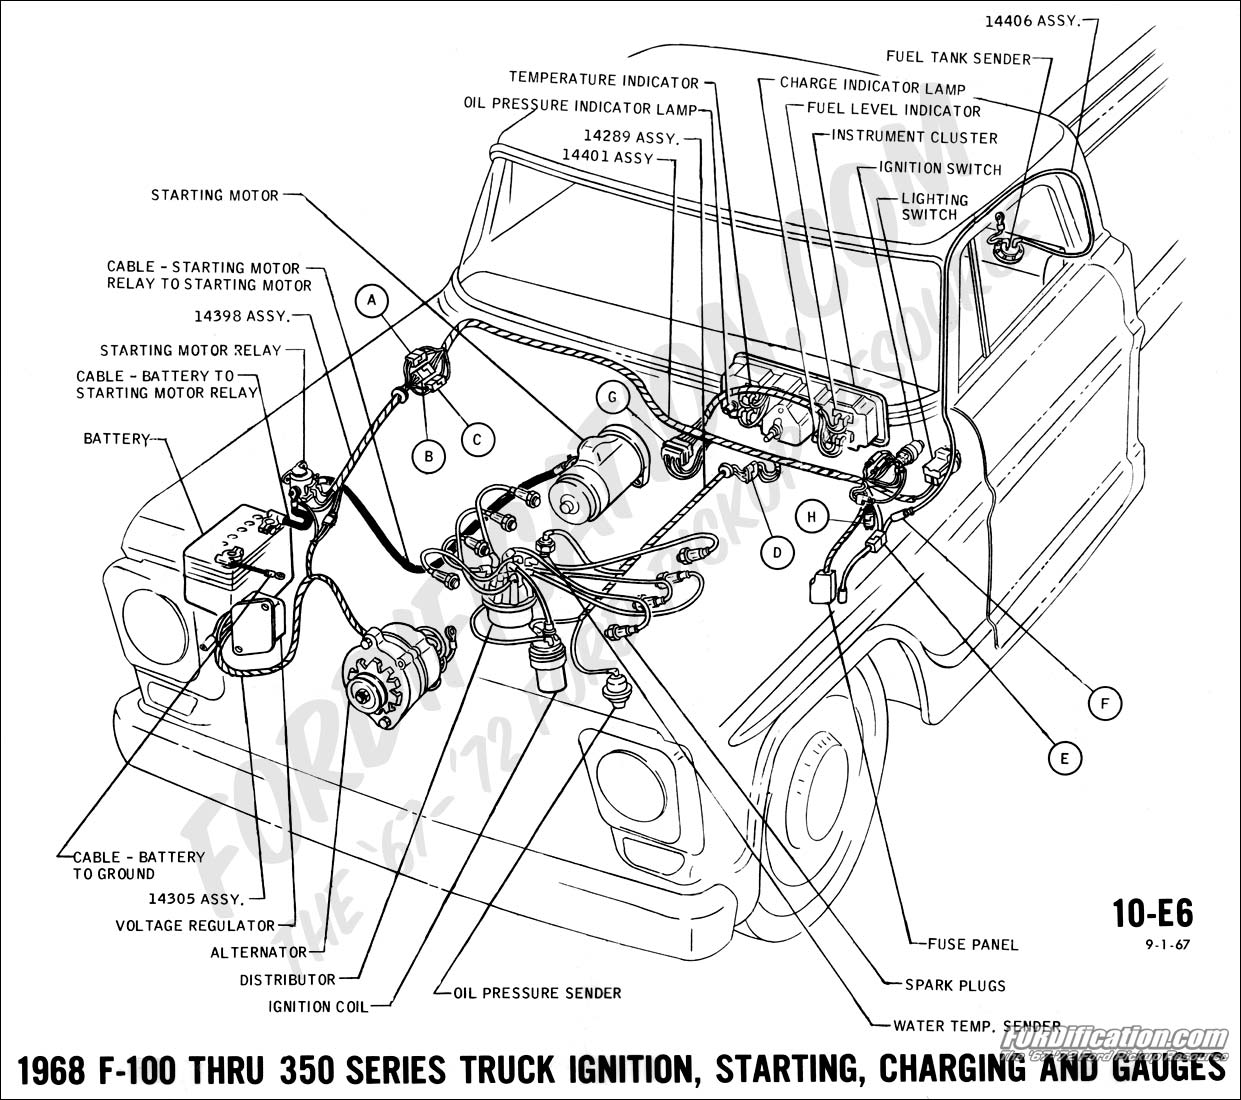 C E furthermore  additionally Diagram Enginecontrols Of additionally Chevy Silverado Wiring Diagram Personligcoachfo Of Chevy Impala Radio Wiring Diagram together with B F A A. on the cluster wiring diagram for 1989 chevy camaro